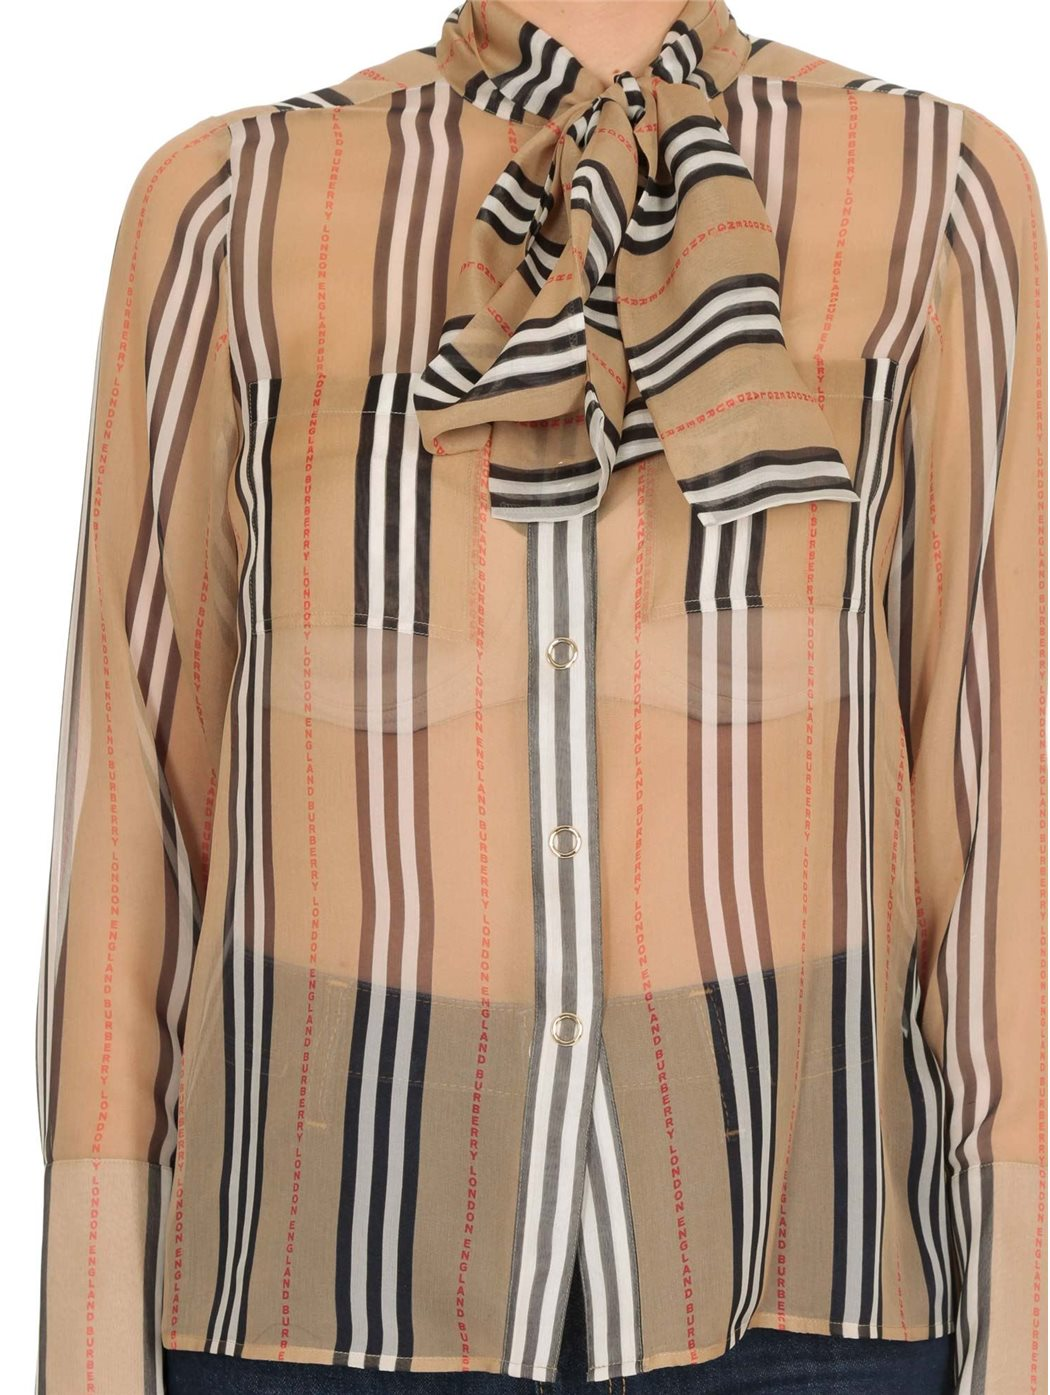 BURBERRY DONNA 8024258 Archive-be CAMICIE